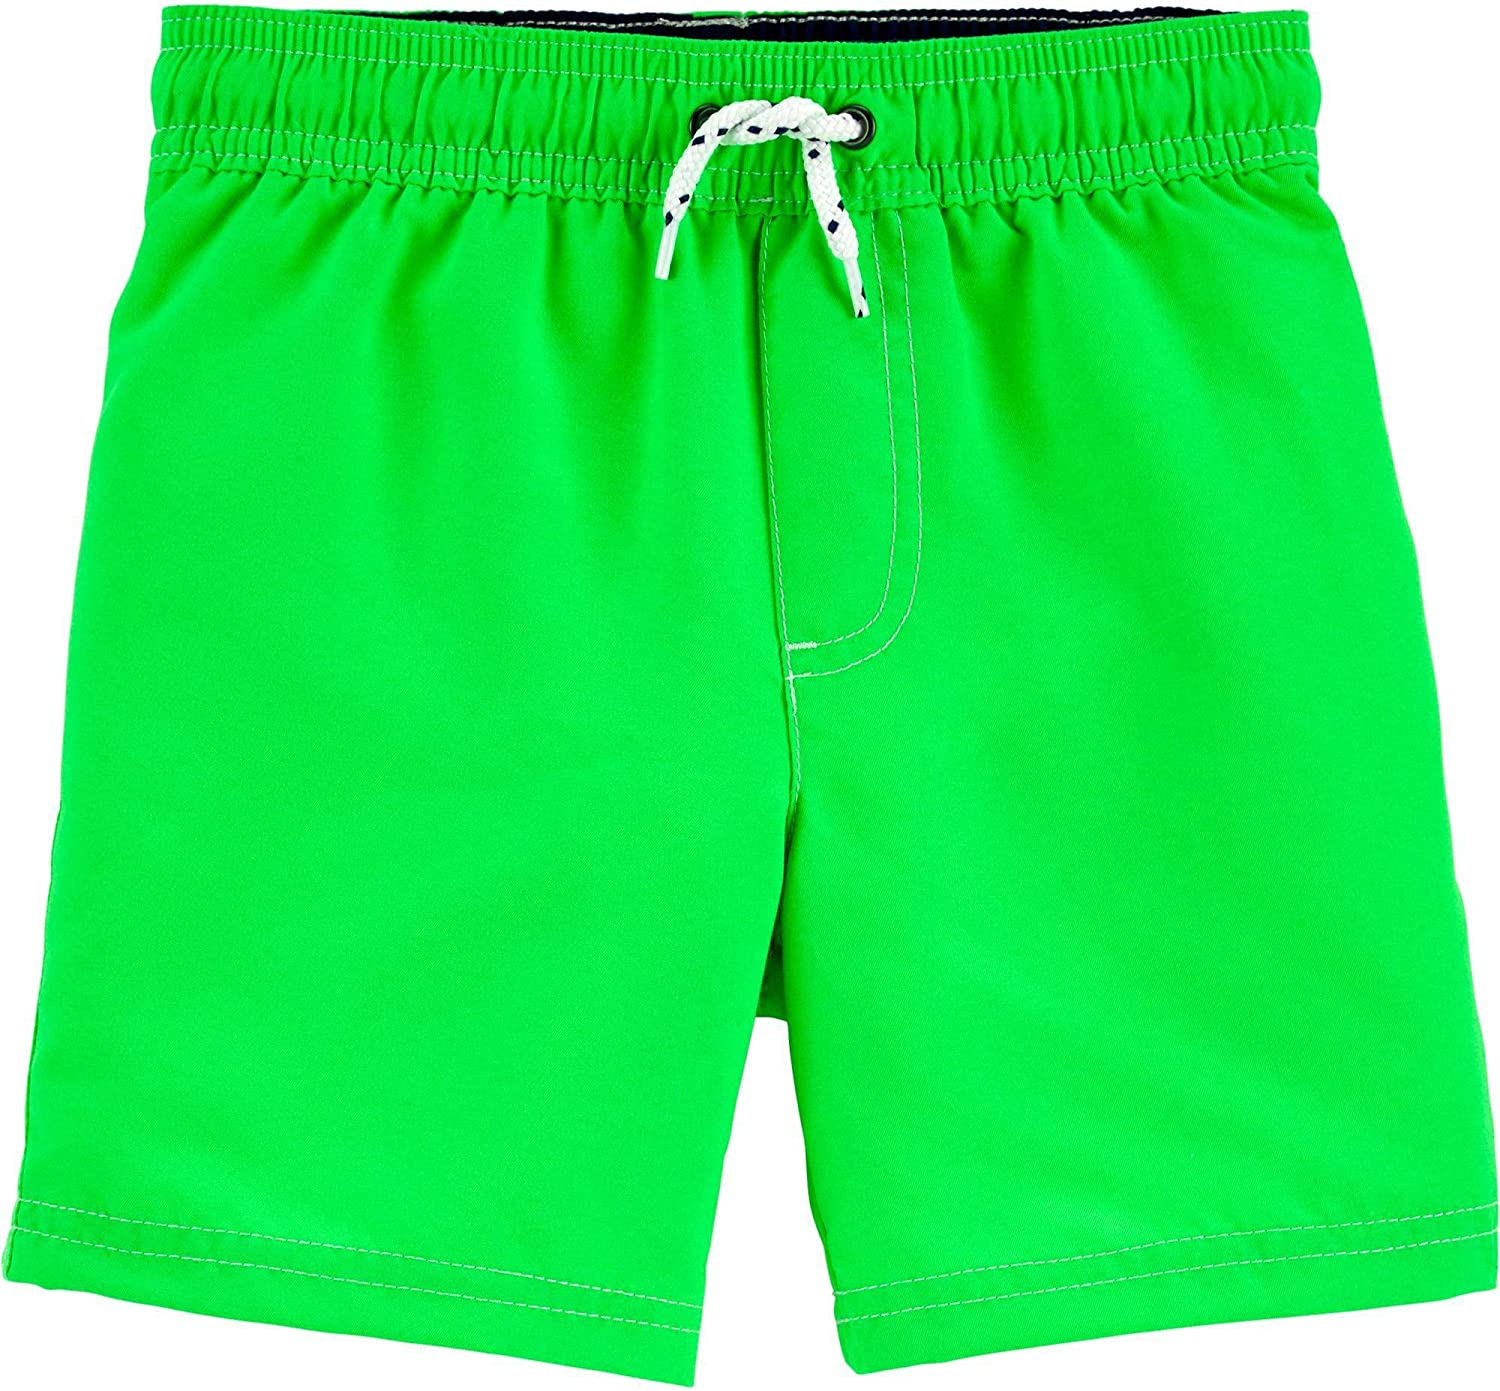 cartes Toddler and Baby Boys 1-Piece Rashguard or Swim Trunks,Freely Combine Your Favorite Sets.